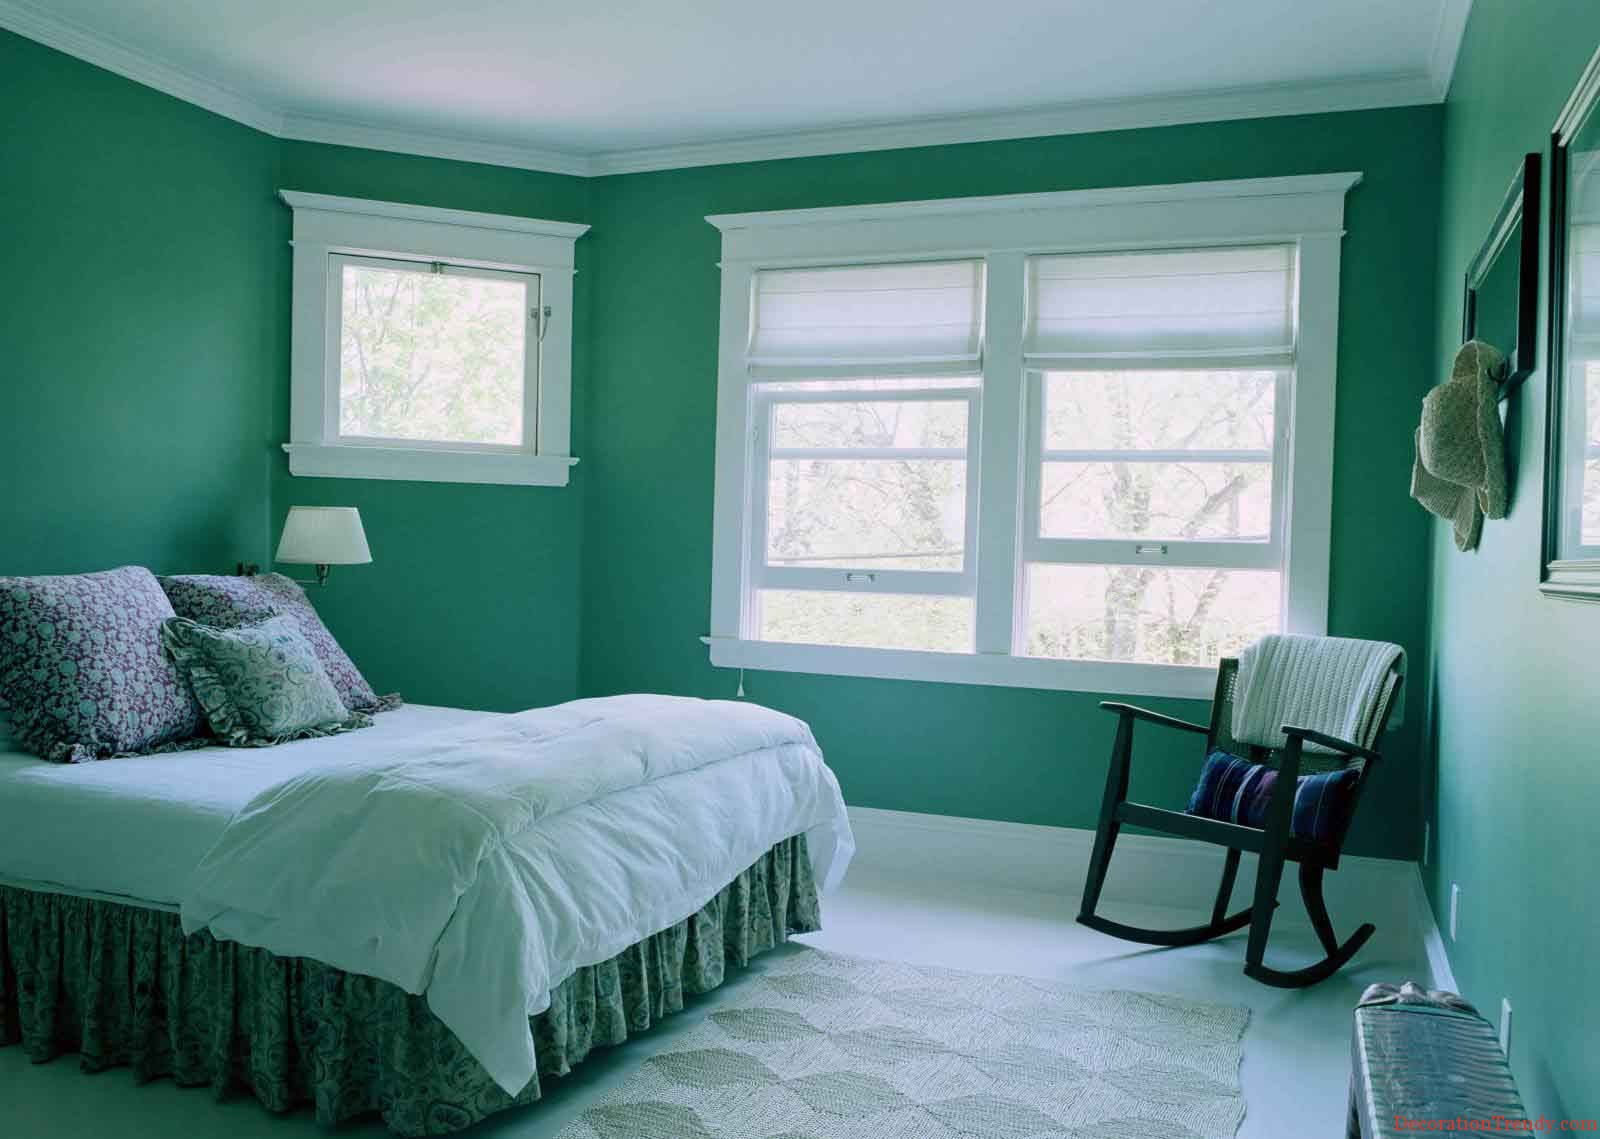 Simple Bedroom Color Ideas Part - 25: Simple Bedroom Colors And Idea